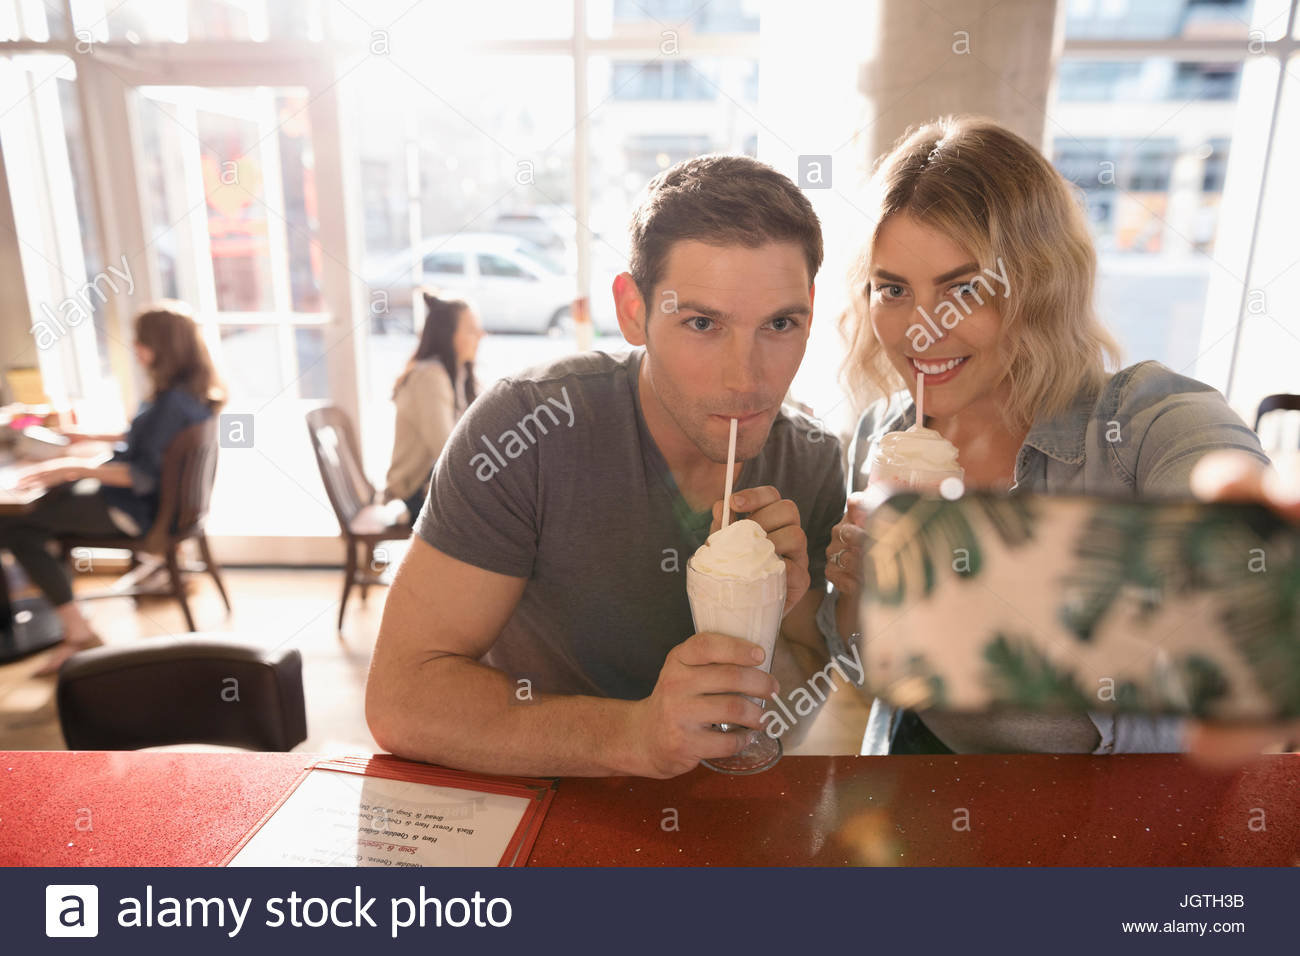 Young couple drinking milkshakes, taking selfie with camera phone Stock Photo